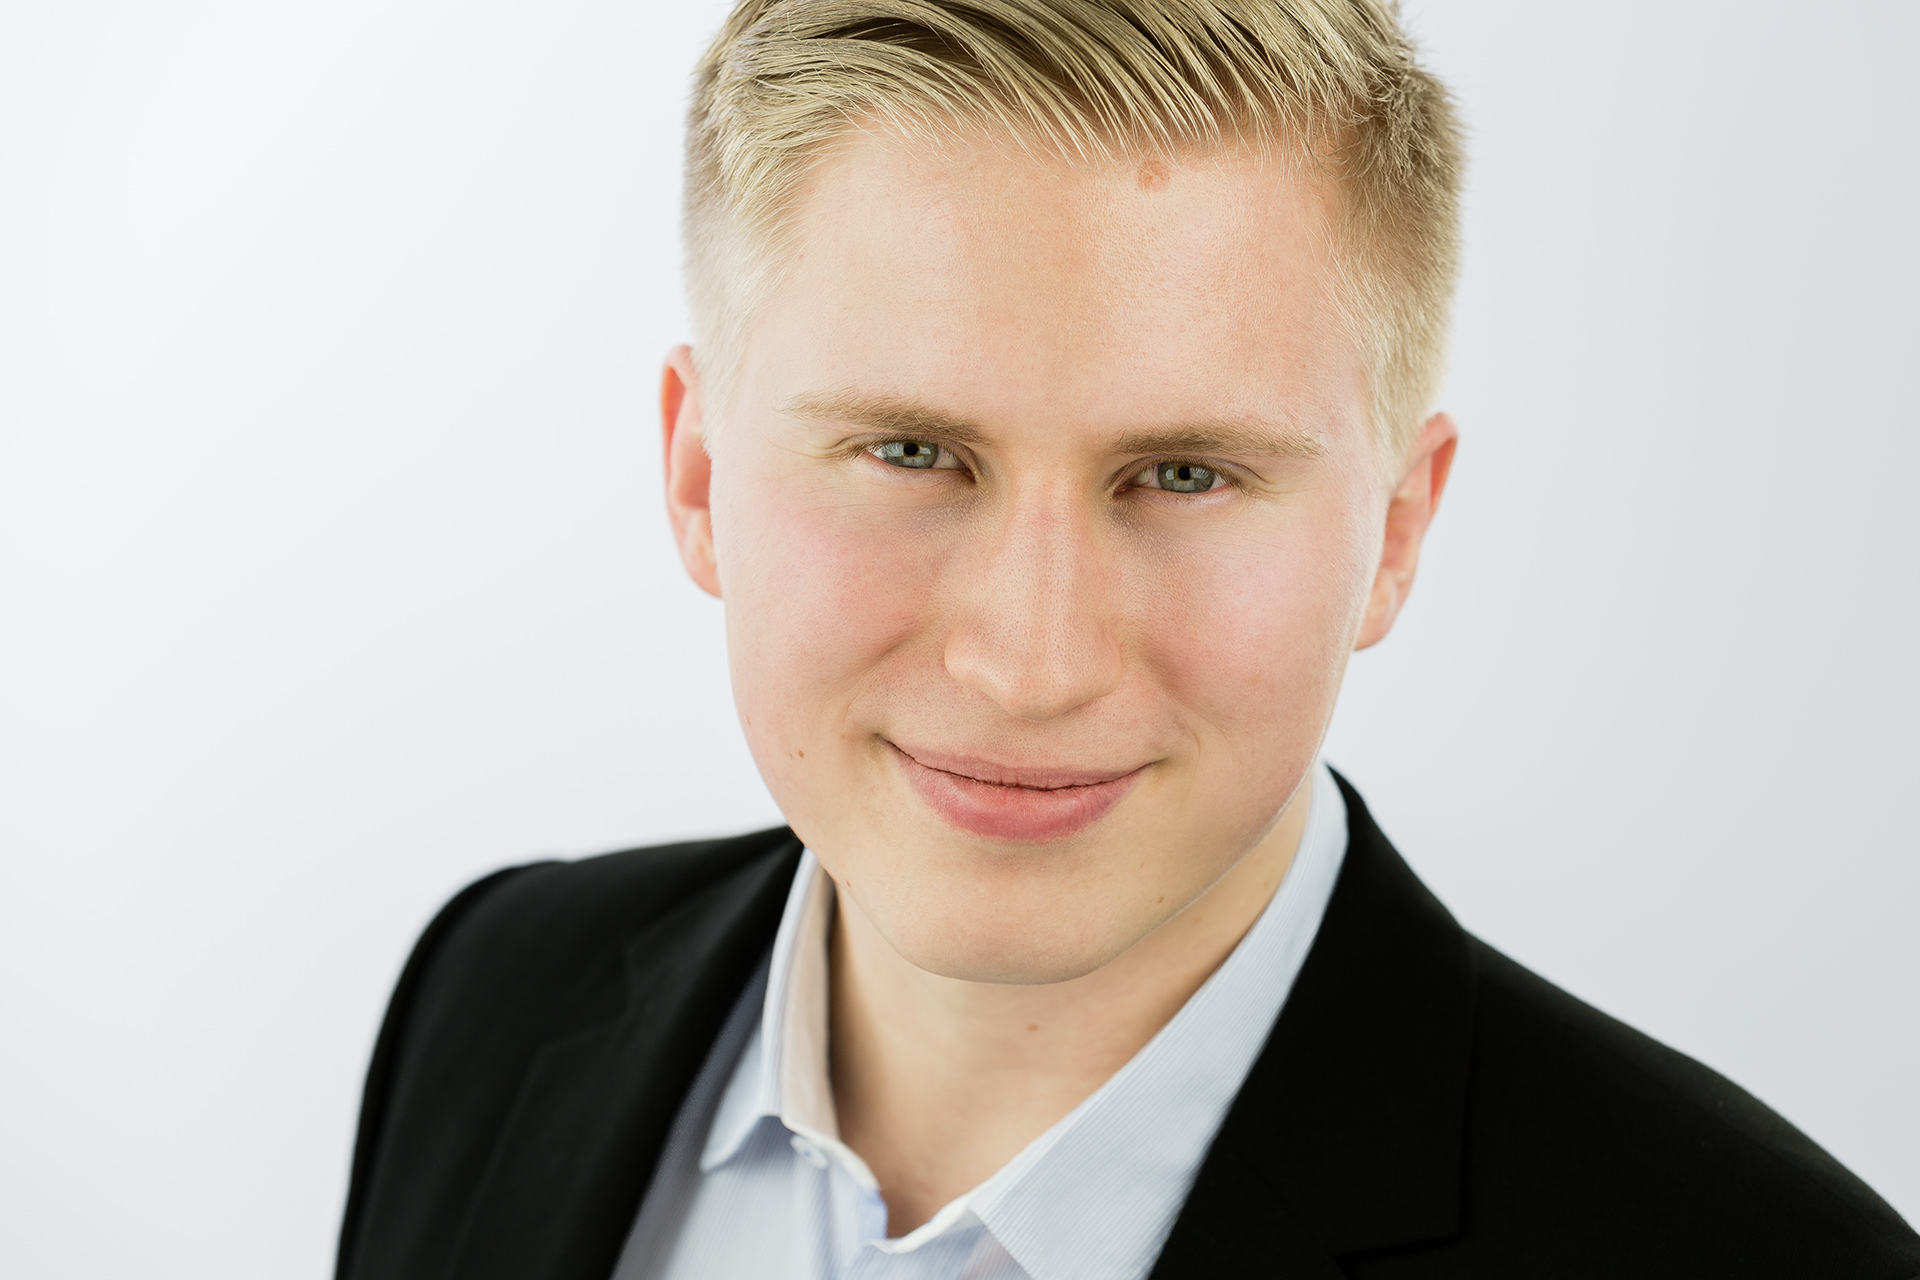 Picture of Juho Carpén, CFO and Co-Founder at Surgify